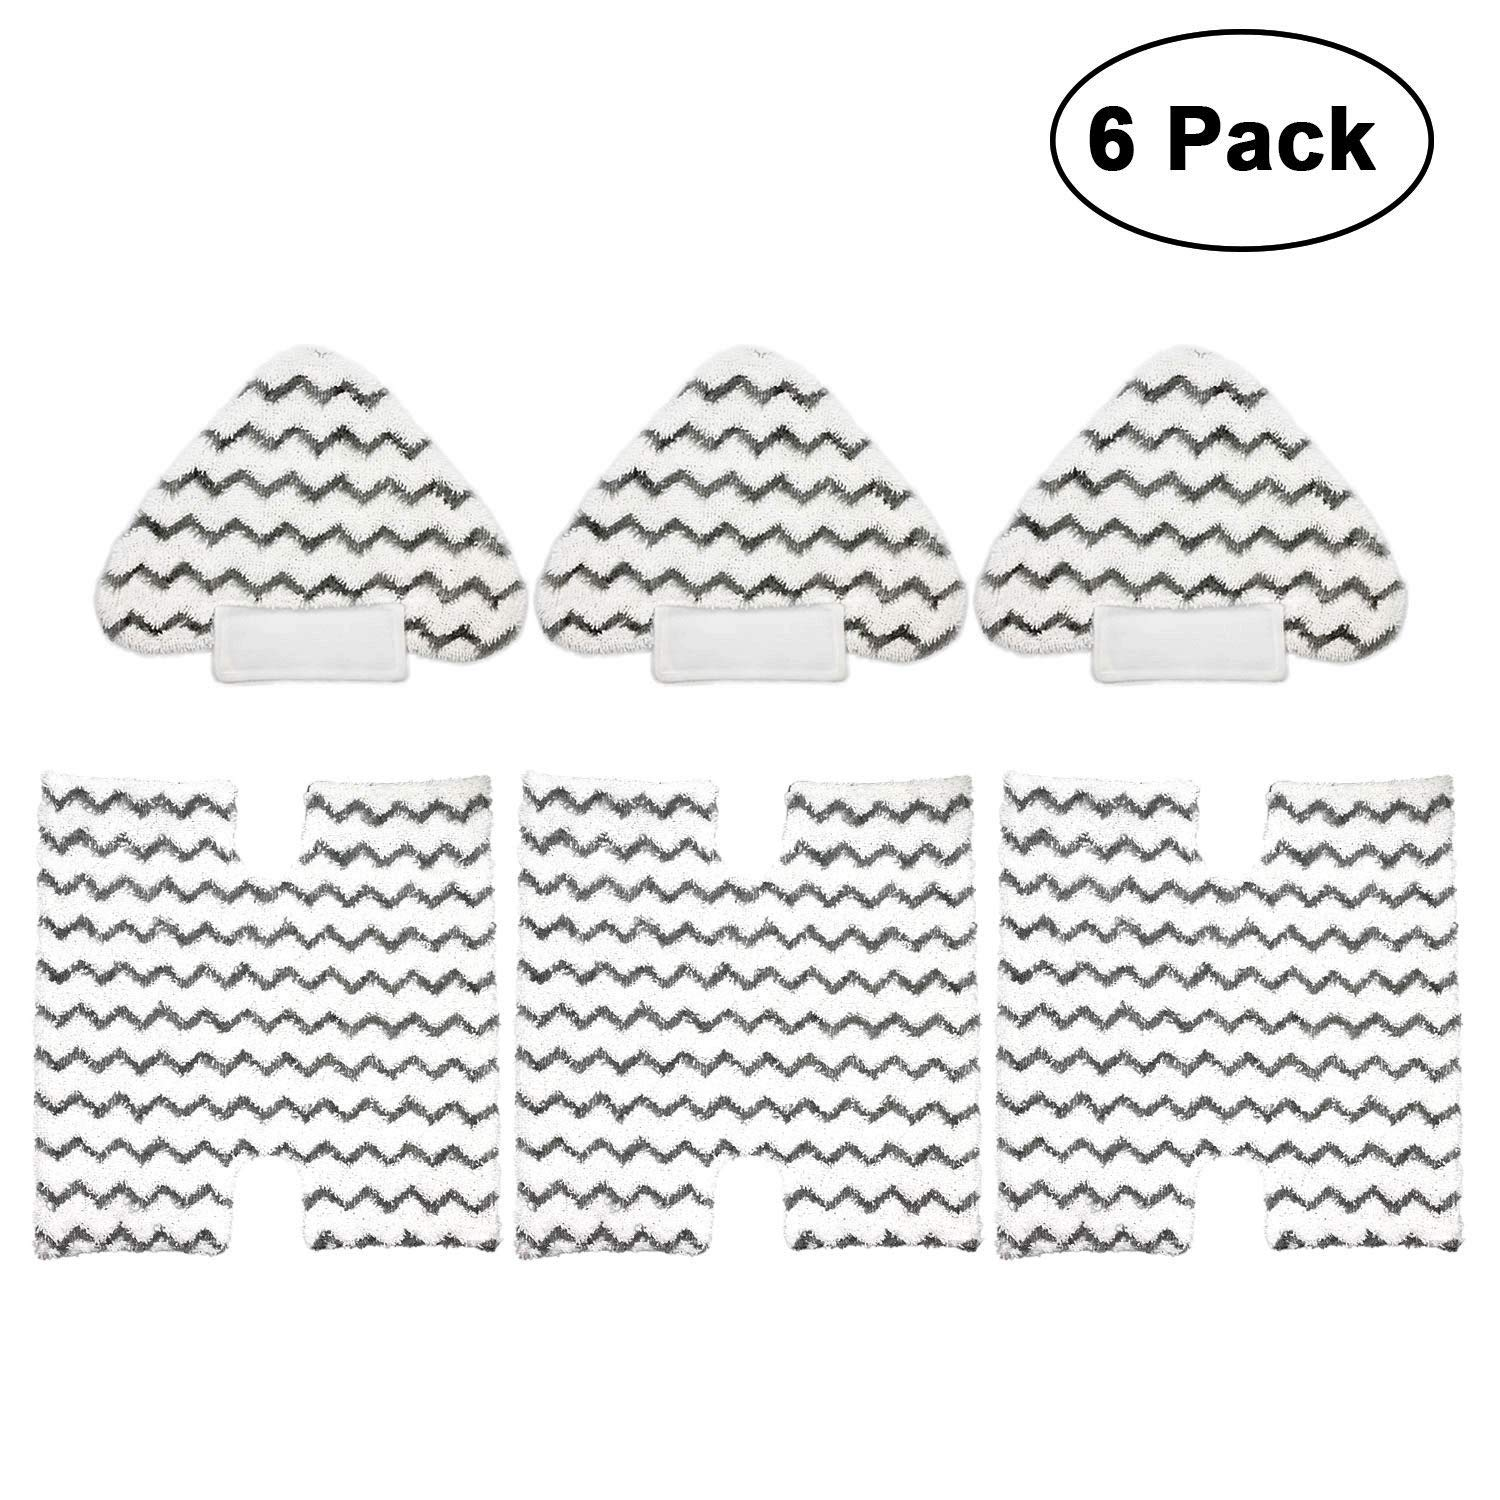 3 Pack Touch-Free Steam Mop Pads + 3 Pack Triangle Dirt Grip Washable Pads Kit for Shark Lift-Away Pro & Genius Steam Pocket Mop System S3973 S3973D S5002 S5003 S6001 S6002 S6003 Part P184WQ & P182W